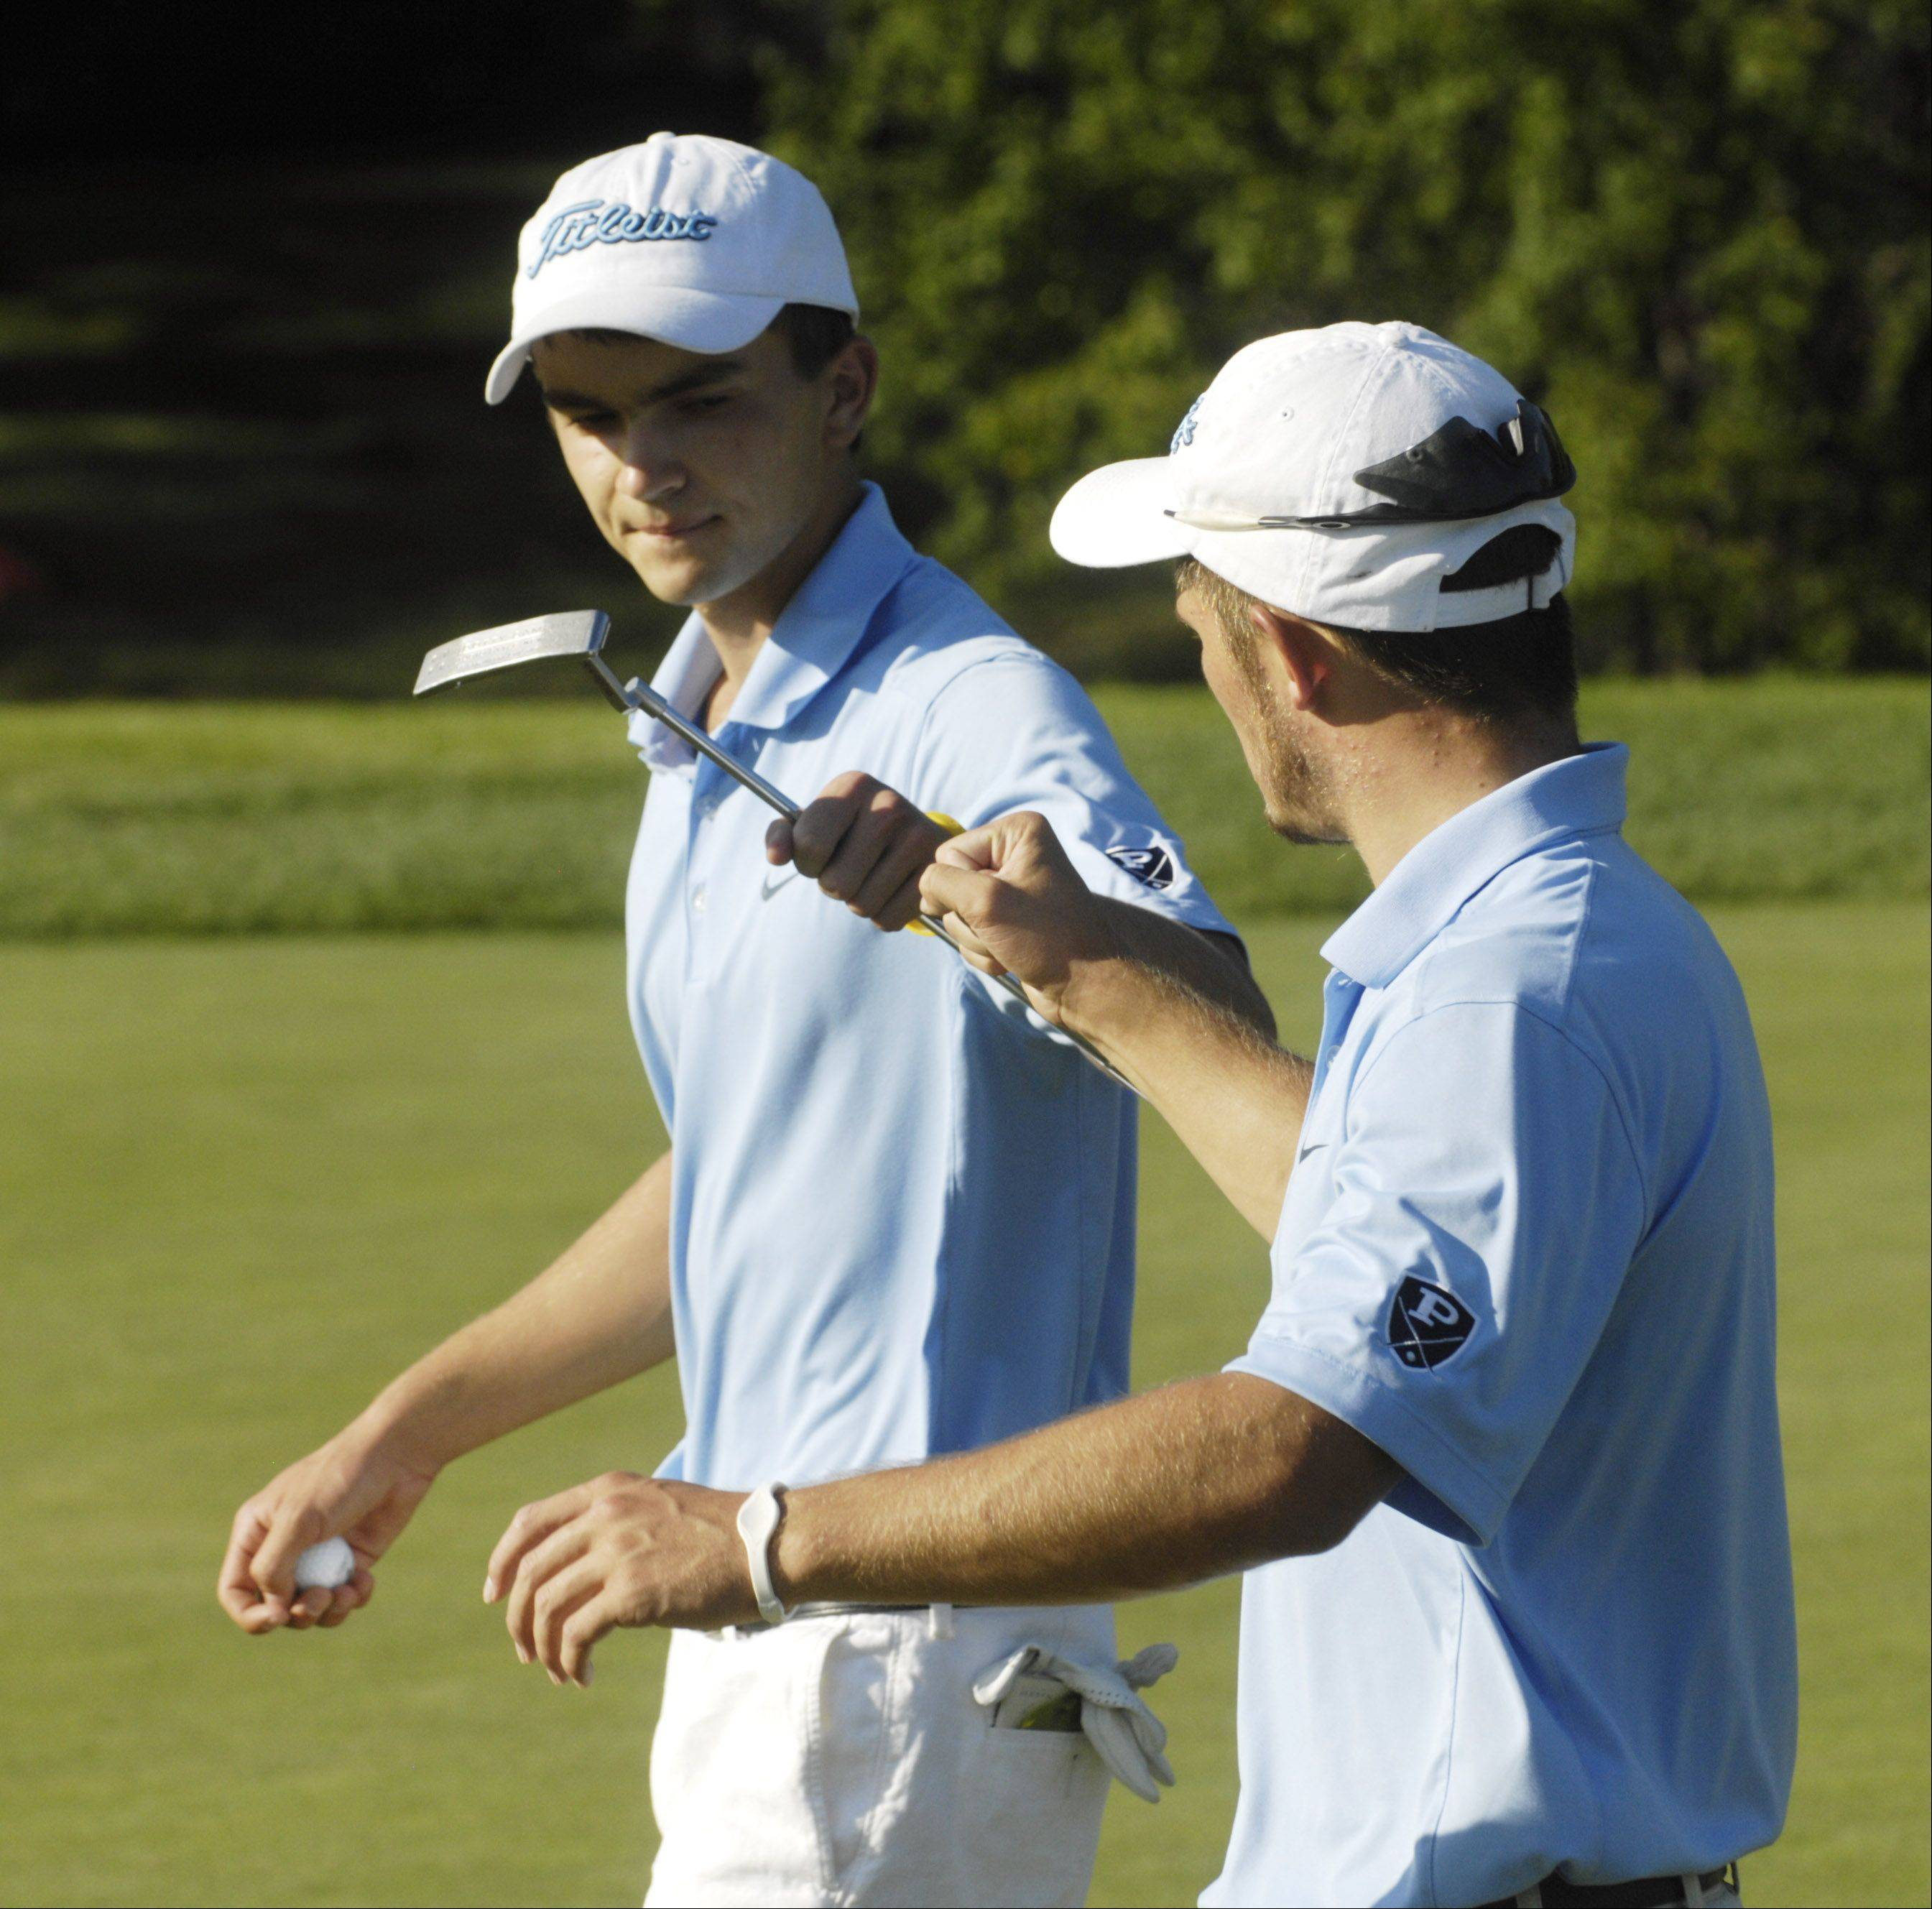 Prospect's Jeff Blethen, left, and Josh Johnson congratulate one another for their efforts on the fifth hole while competing against Barrington at Makray Memorial Golf Course in Barrington on Wednesday.